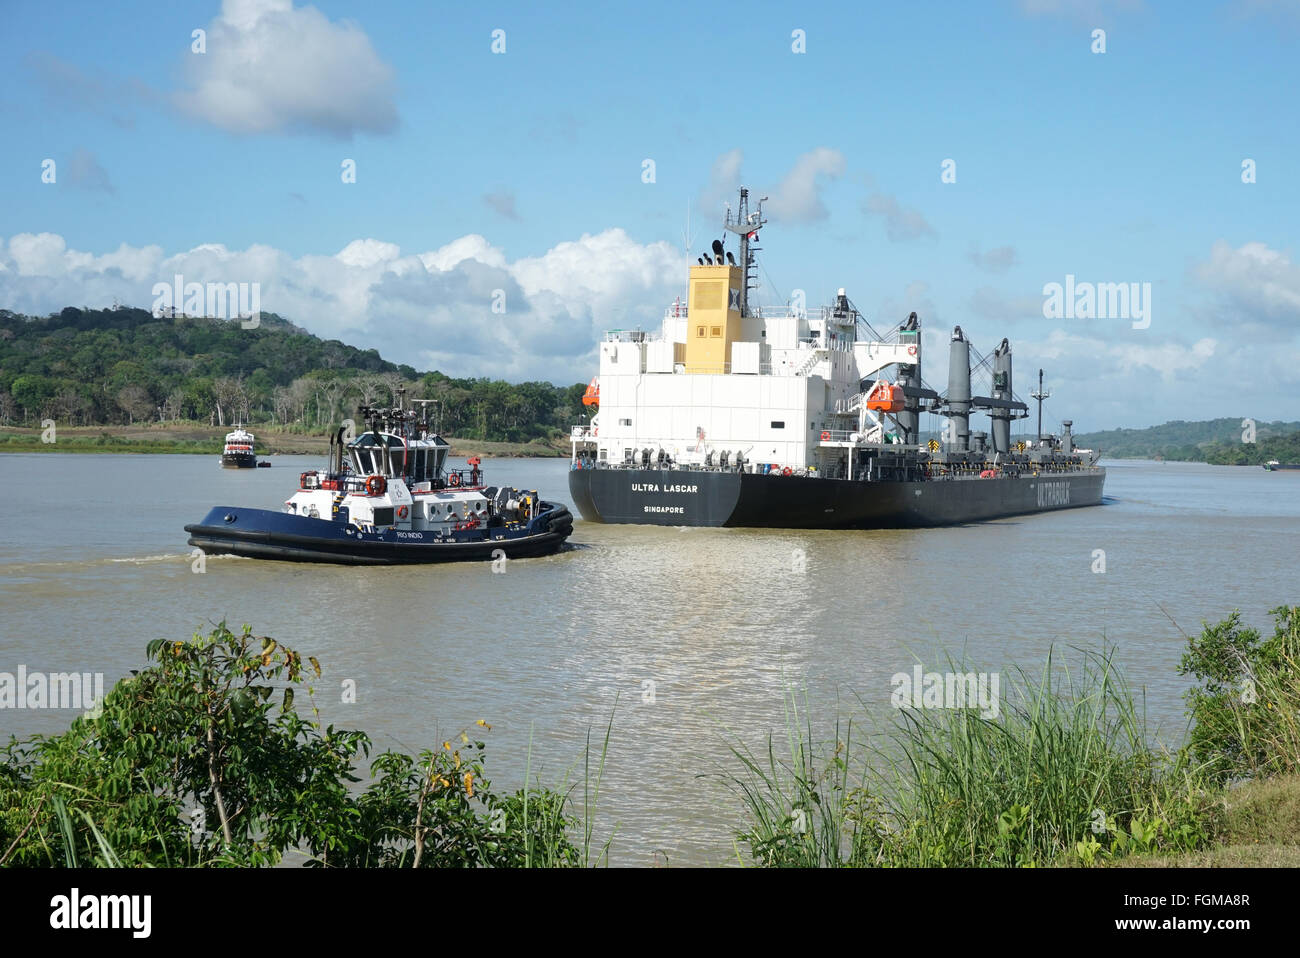 Pilot ship escorting bulk carrier at the panama canal near gamboa - Stock Image